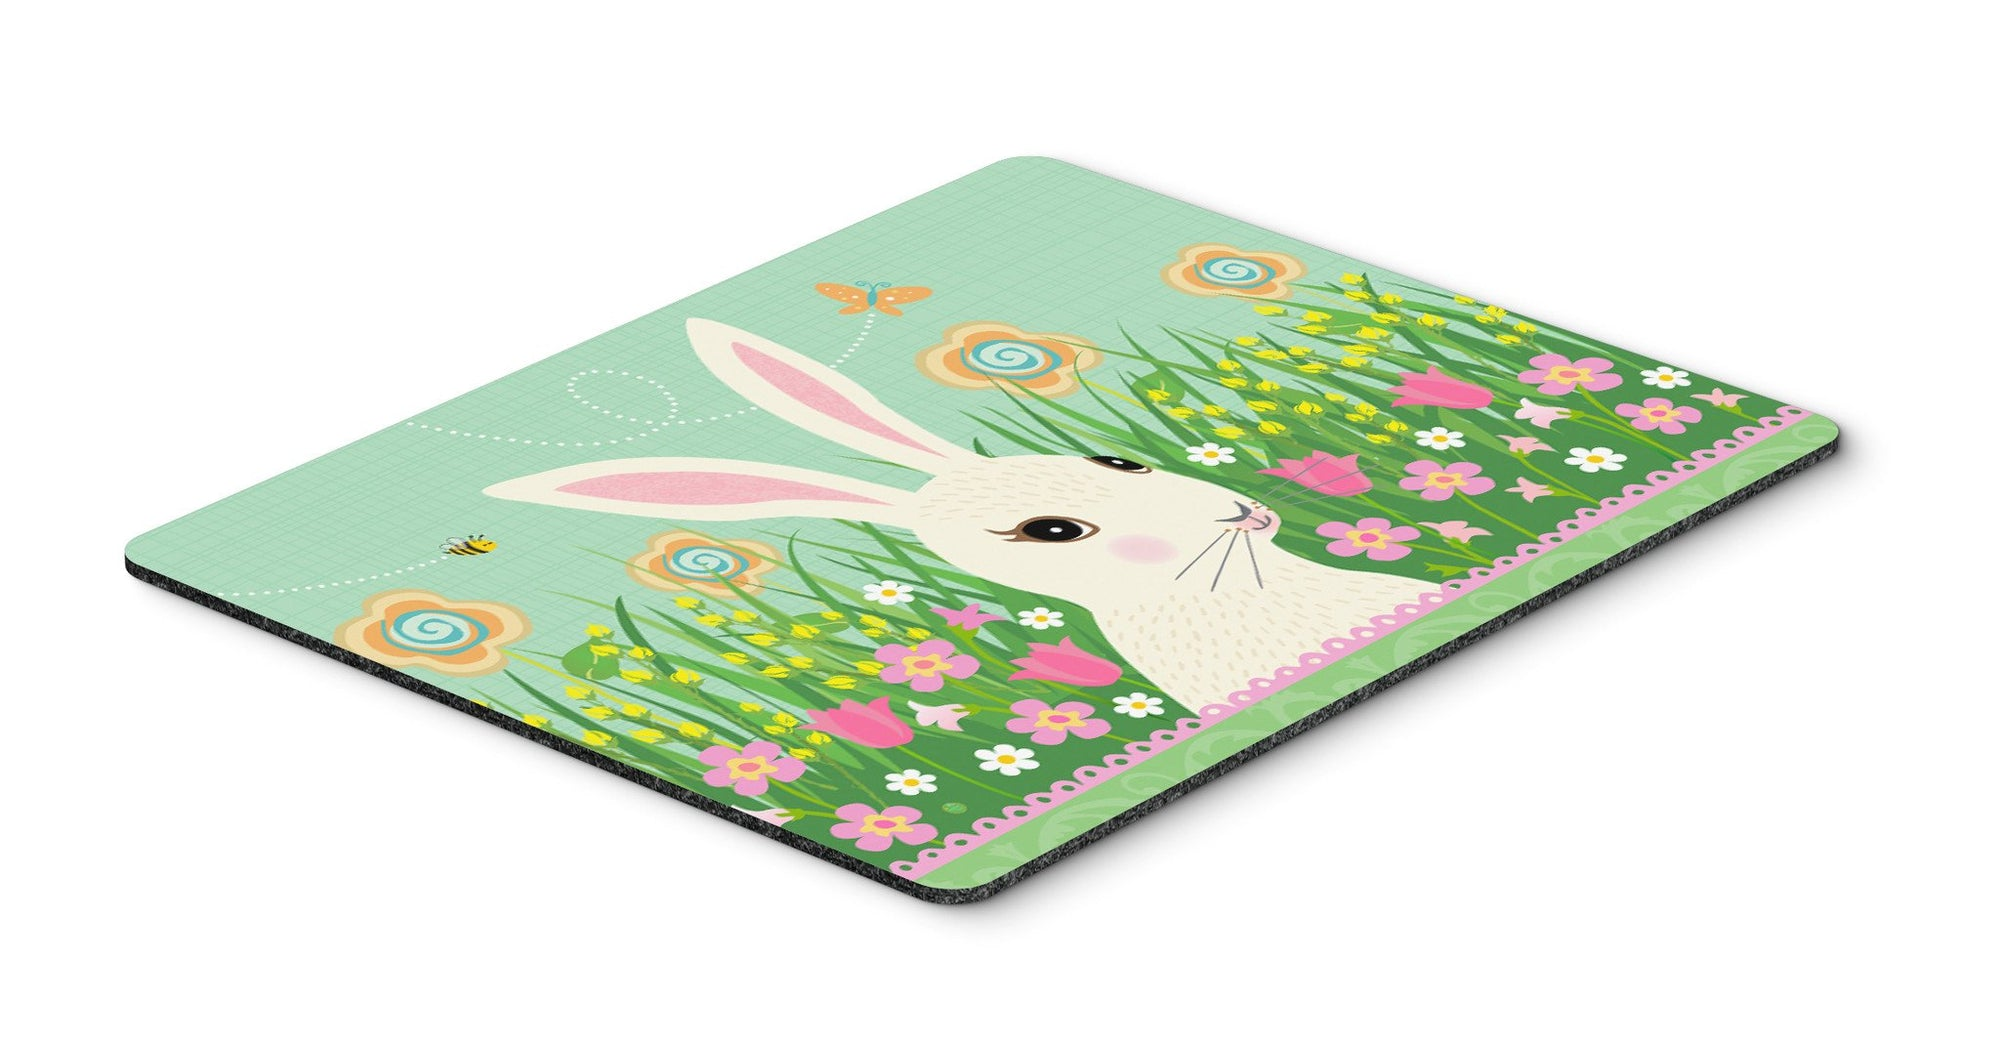 Easter Bunny Rabbit Mouse Pad, Hot Pad or Trivet VHA3023MP by Caroline's Treasures